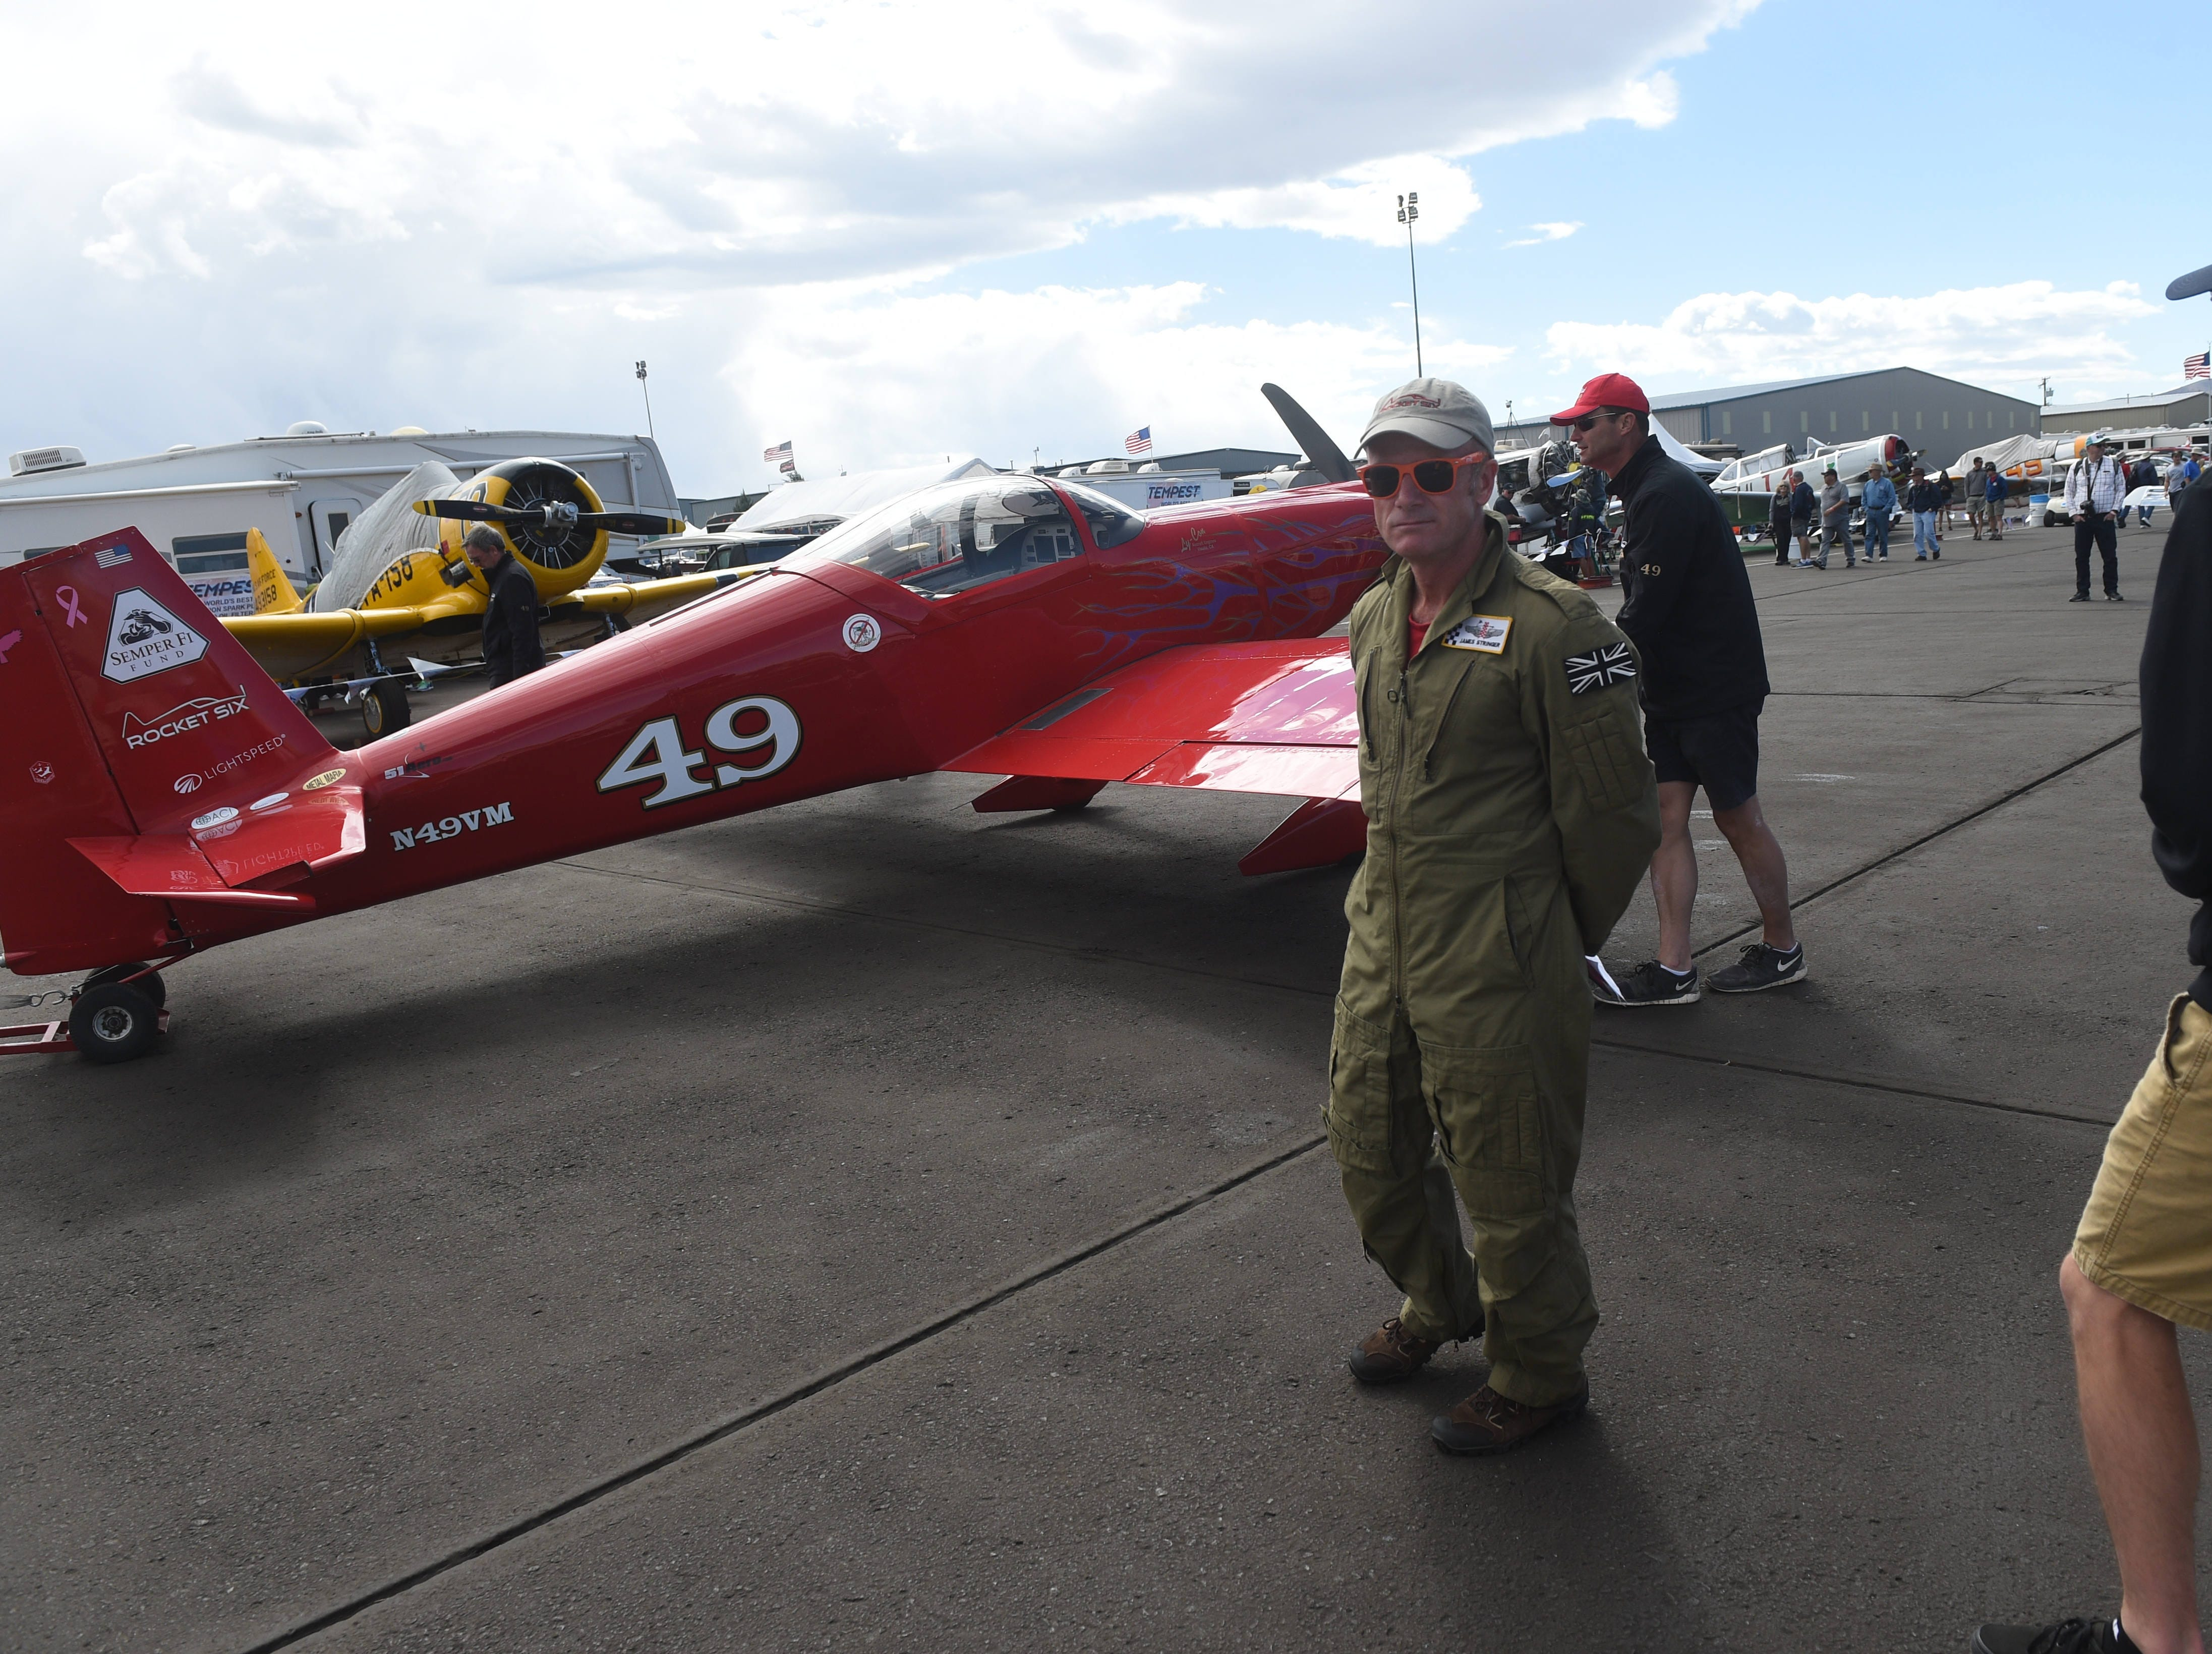 The STIHL National Championship Air Races at Stead Airport north of Reno on Sept. 15, 2018.